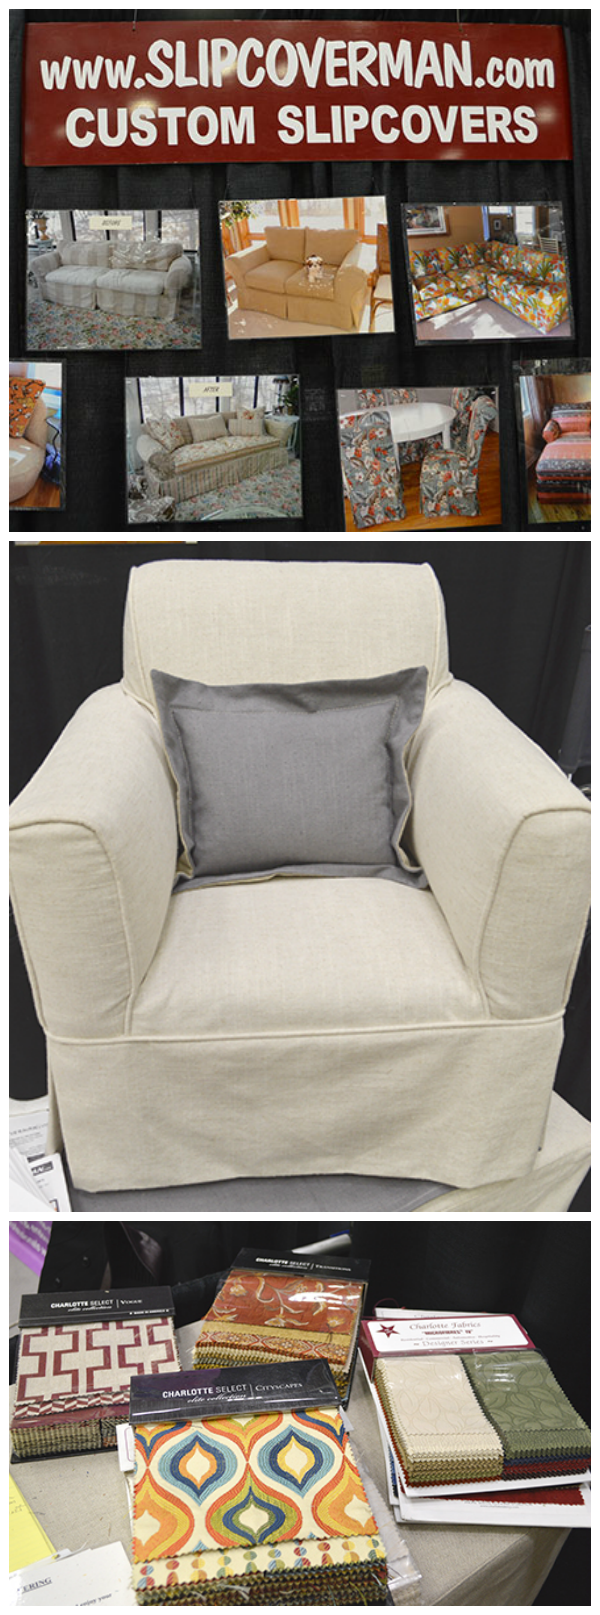 Slipcover Man: custom fitted slipcovers